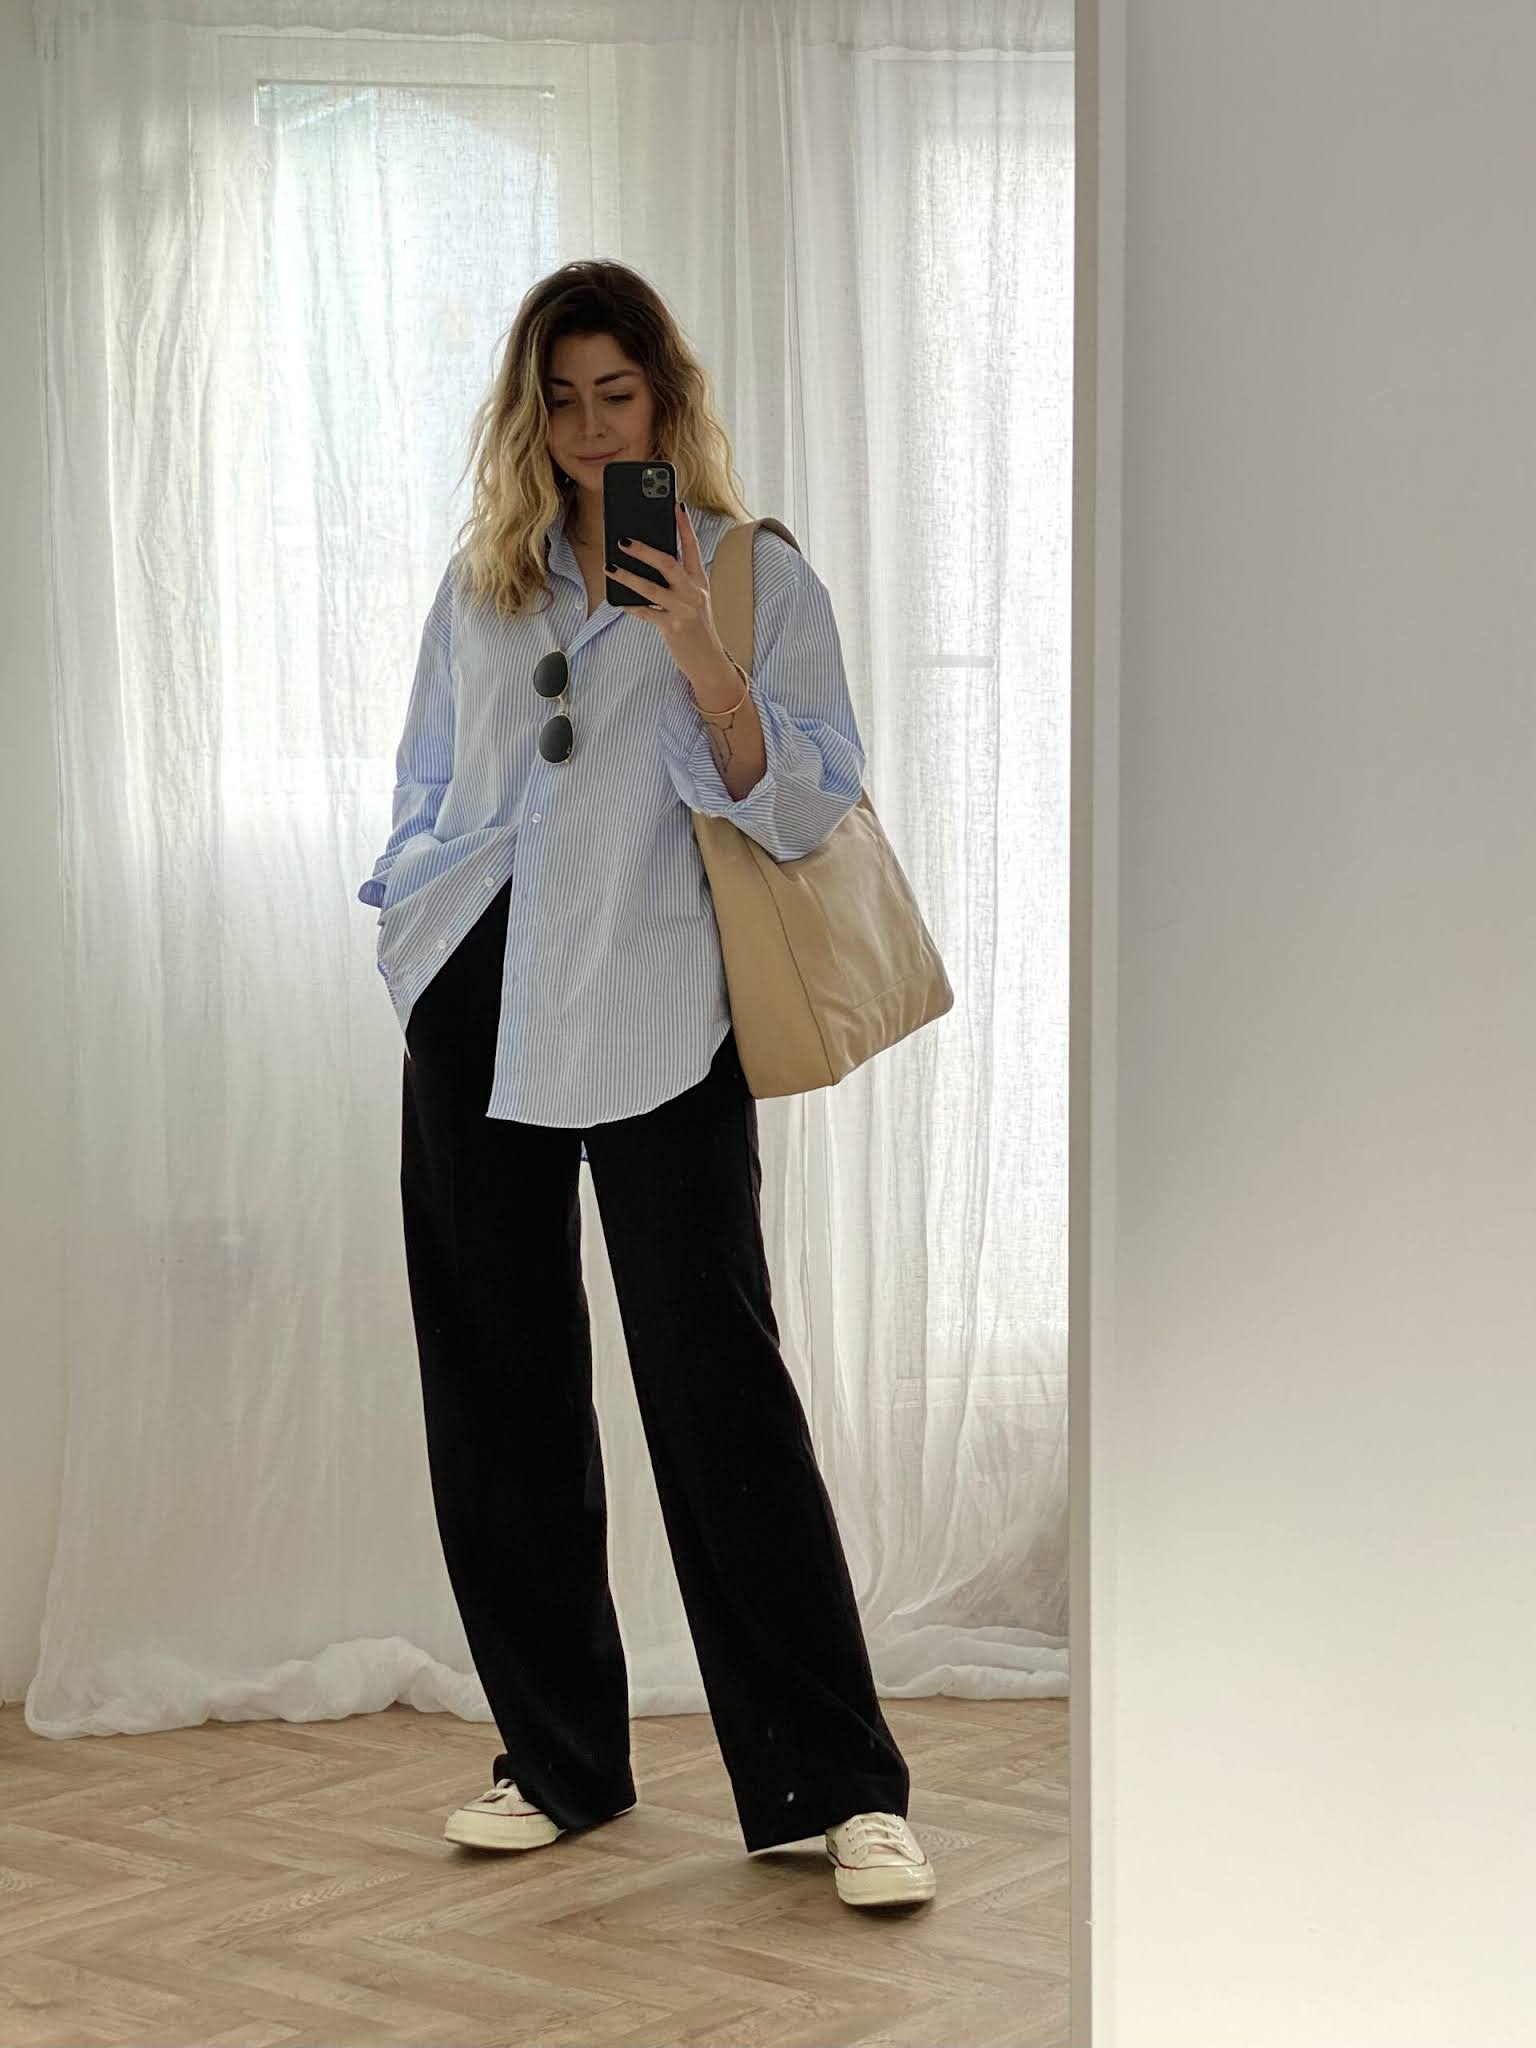 A Cool Weekend-Ready Look for Running Errands — Emma Hill in a blue striped button-down shirt, beige tote, baggy black pants, and white Converse sneakers